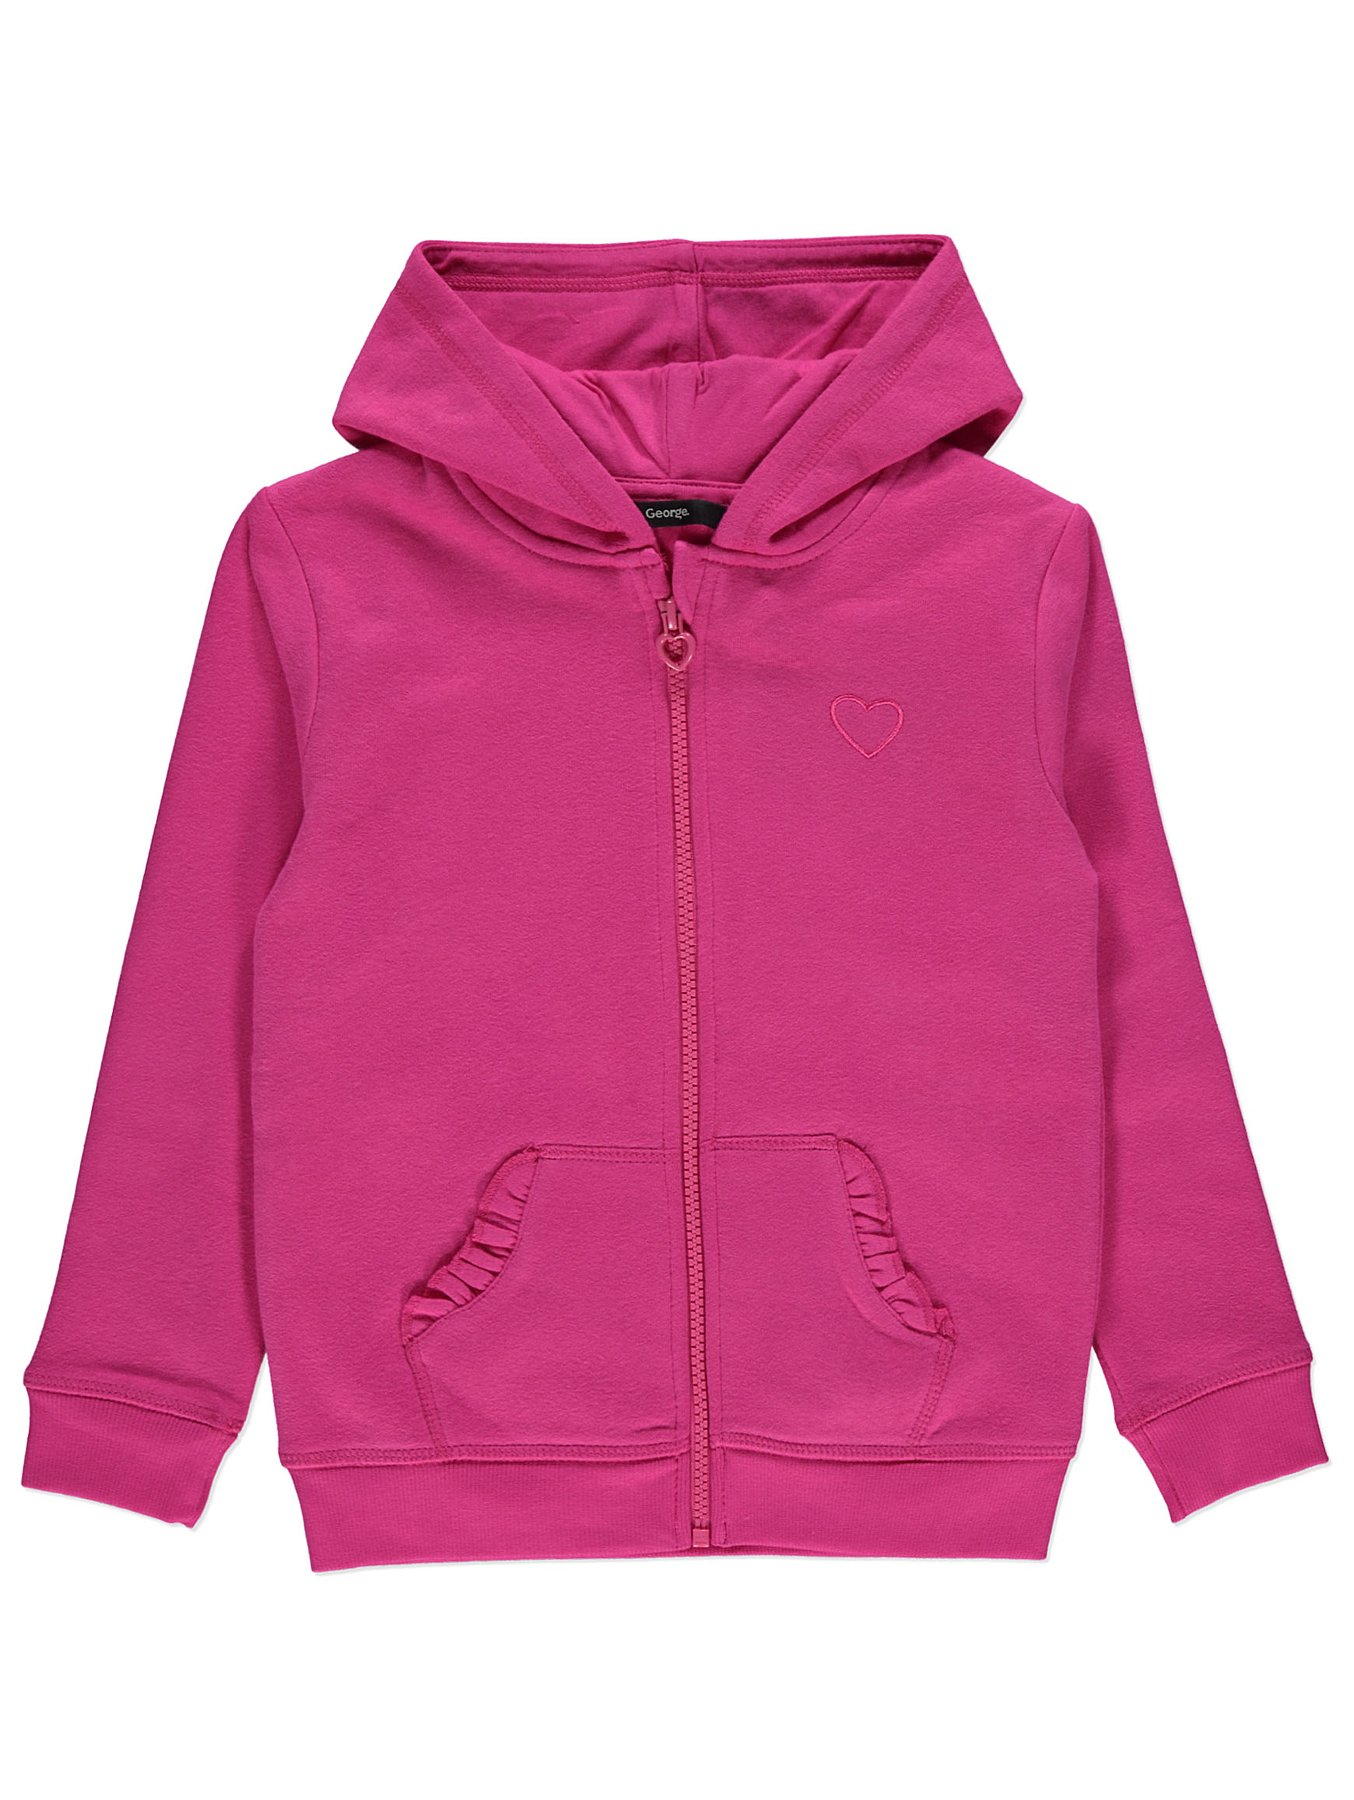 los angeles sale uk first look Pink Embroidered Heart Zip-Up Hoodie